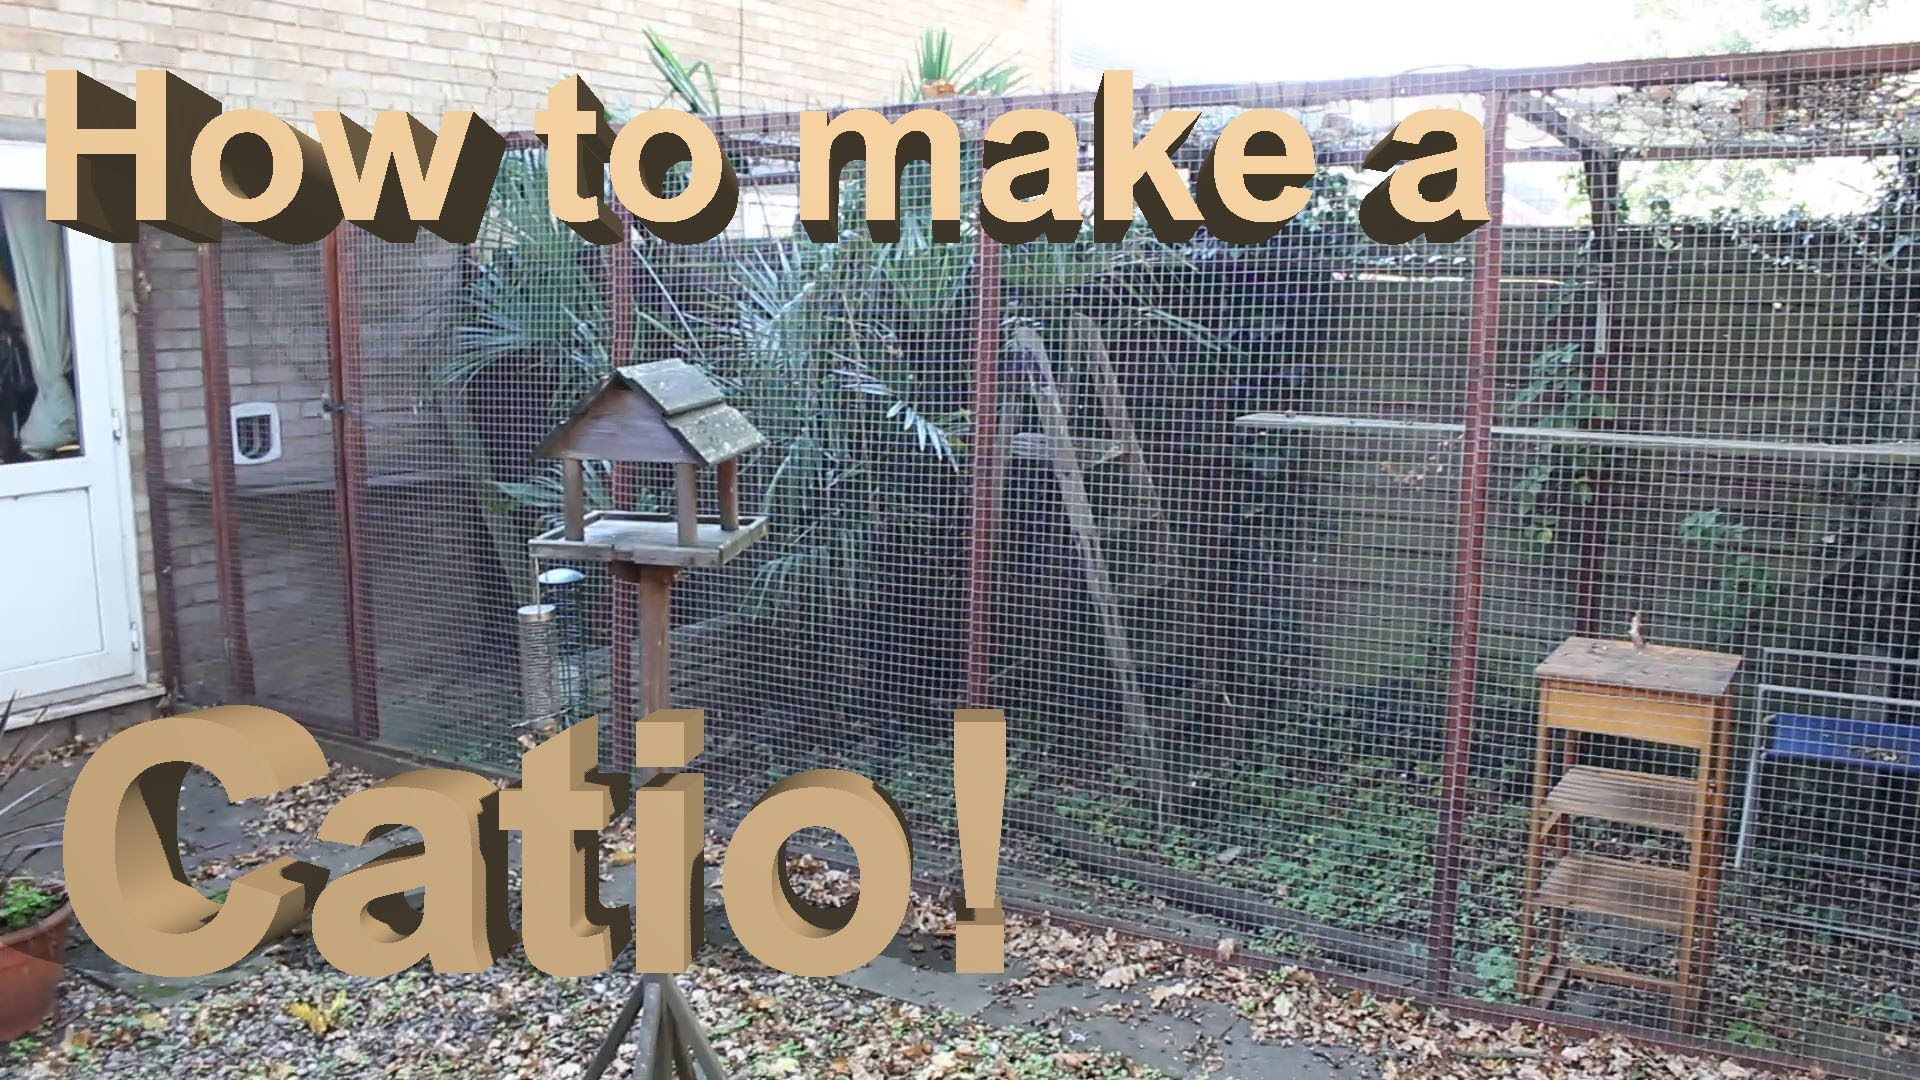 How To Build A Catio With Tips Youtube Catio Bengal Cat Outdoor Pet Enclosure